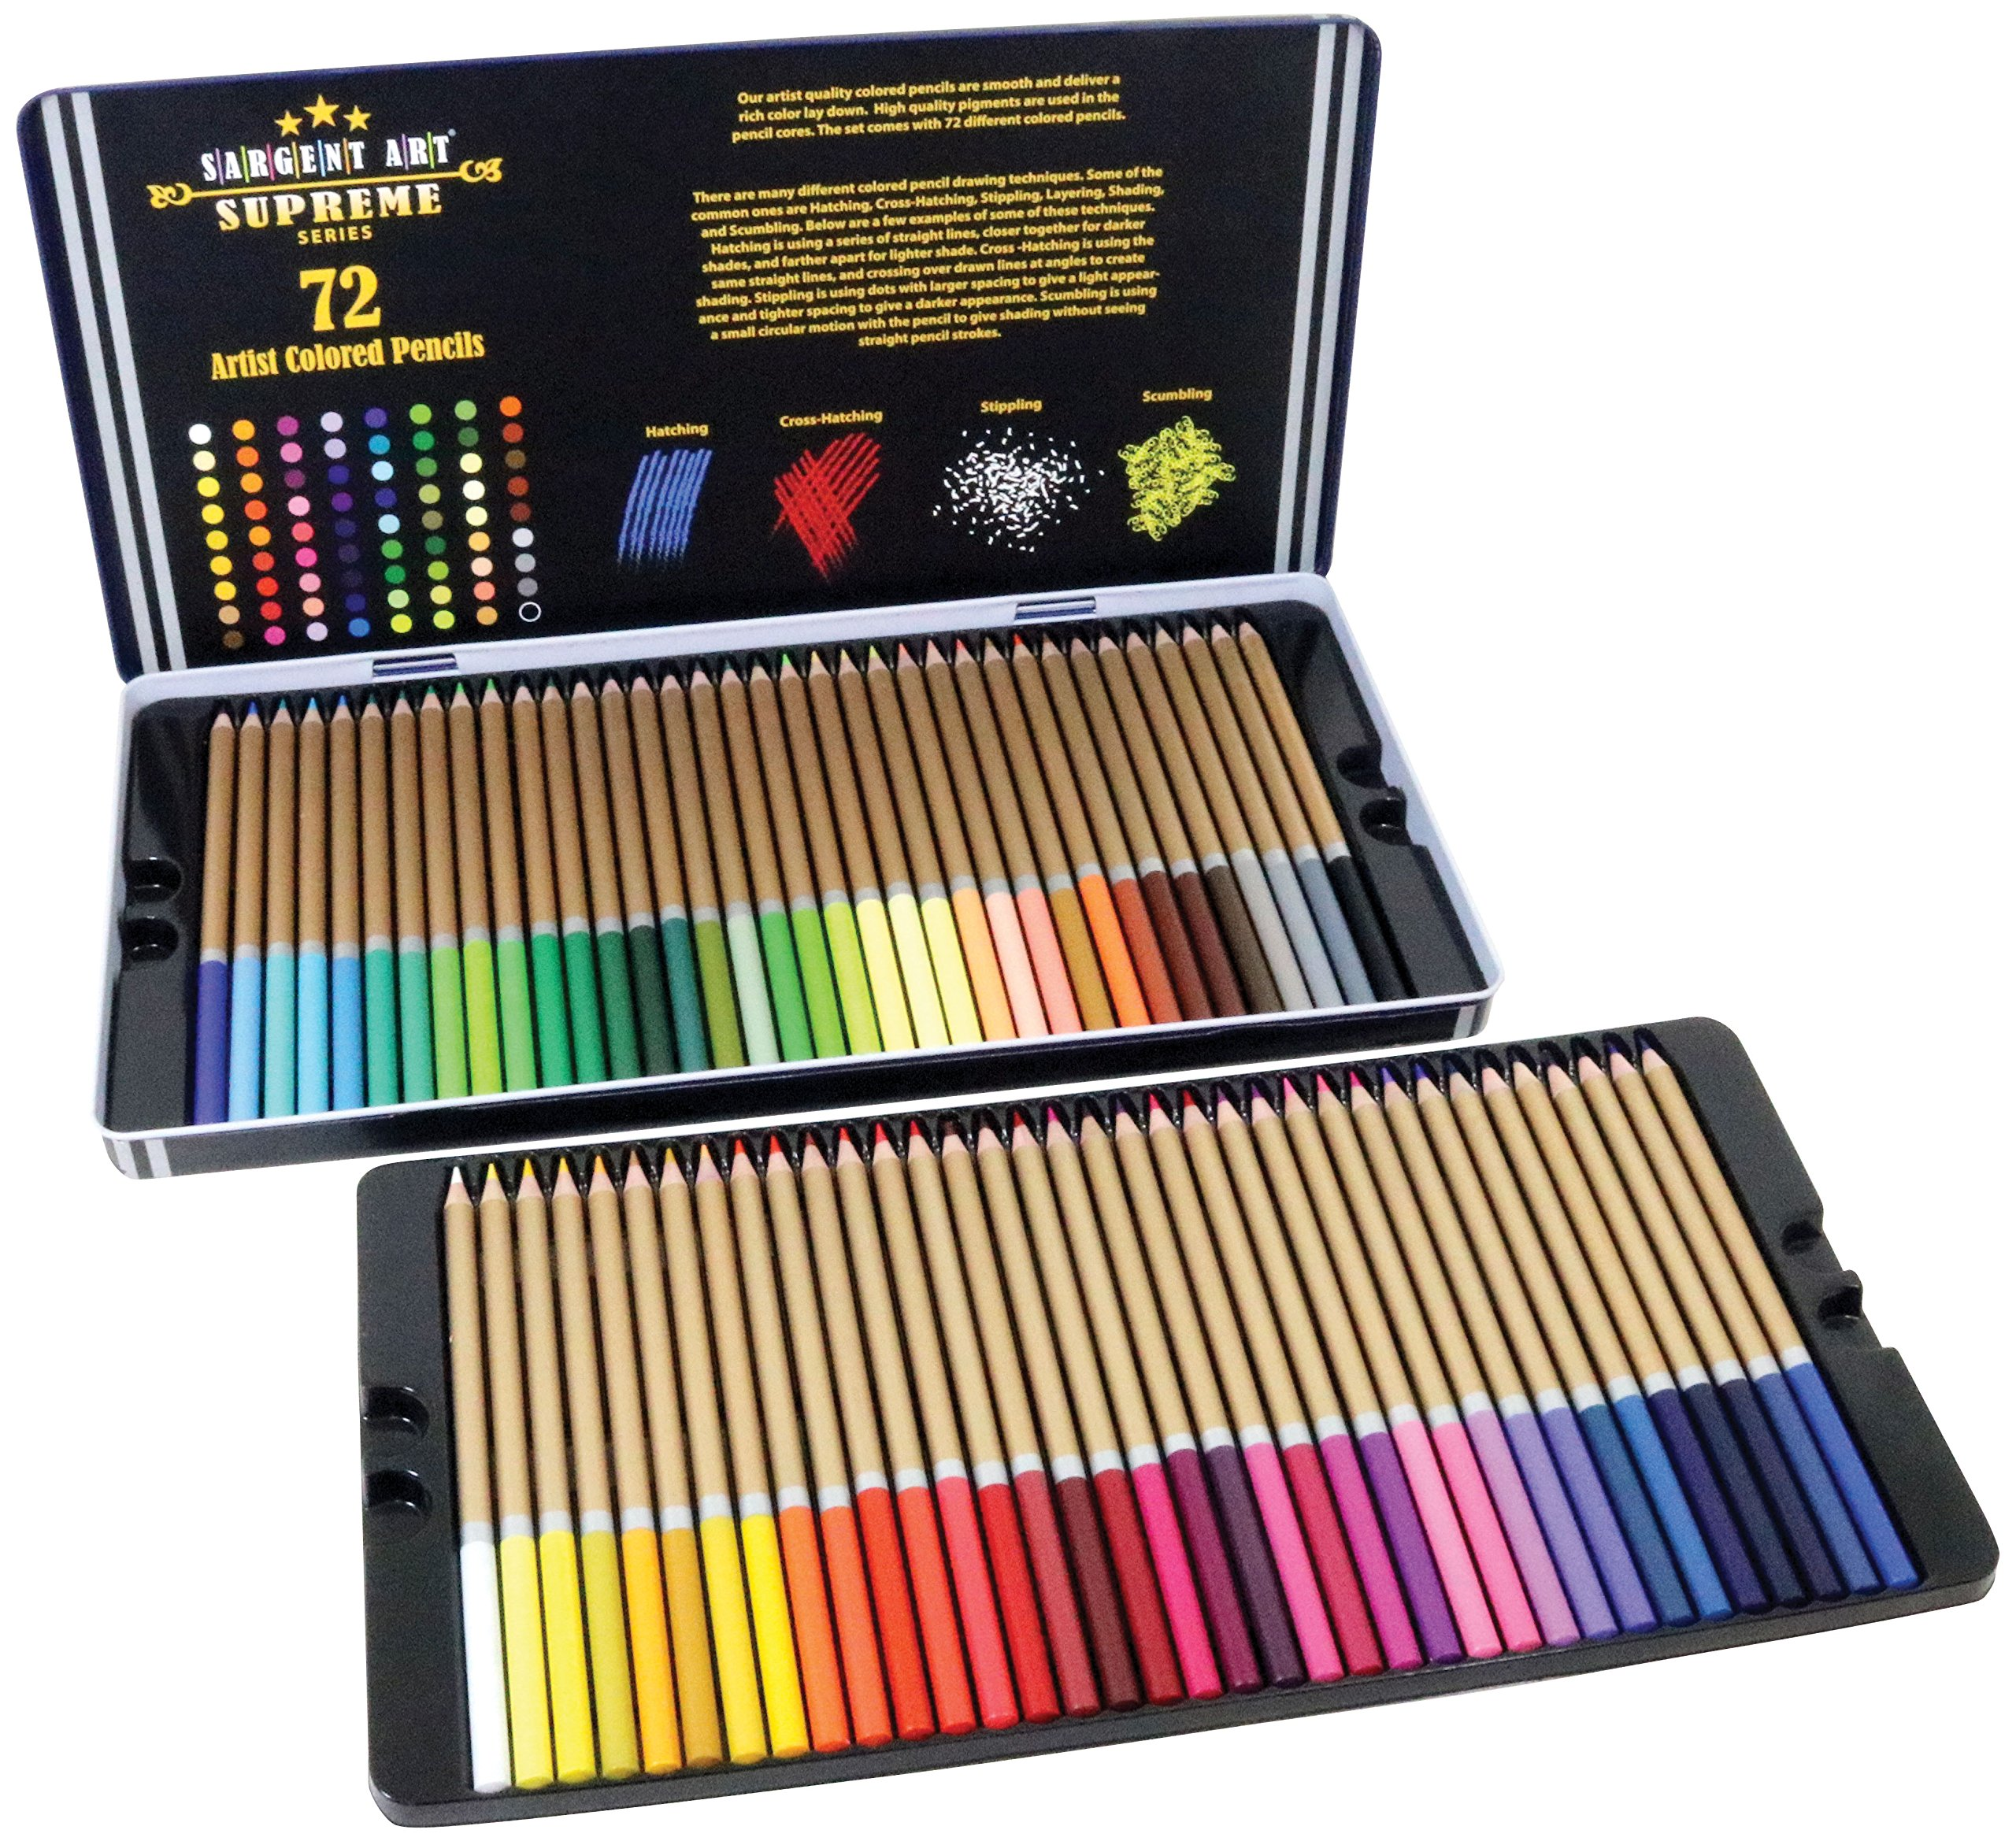 sargent art 22 7287 72ct colored pencils artist quality coloring